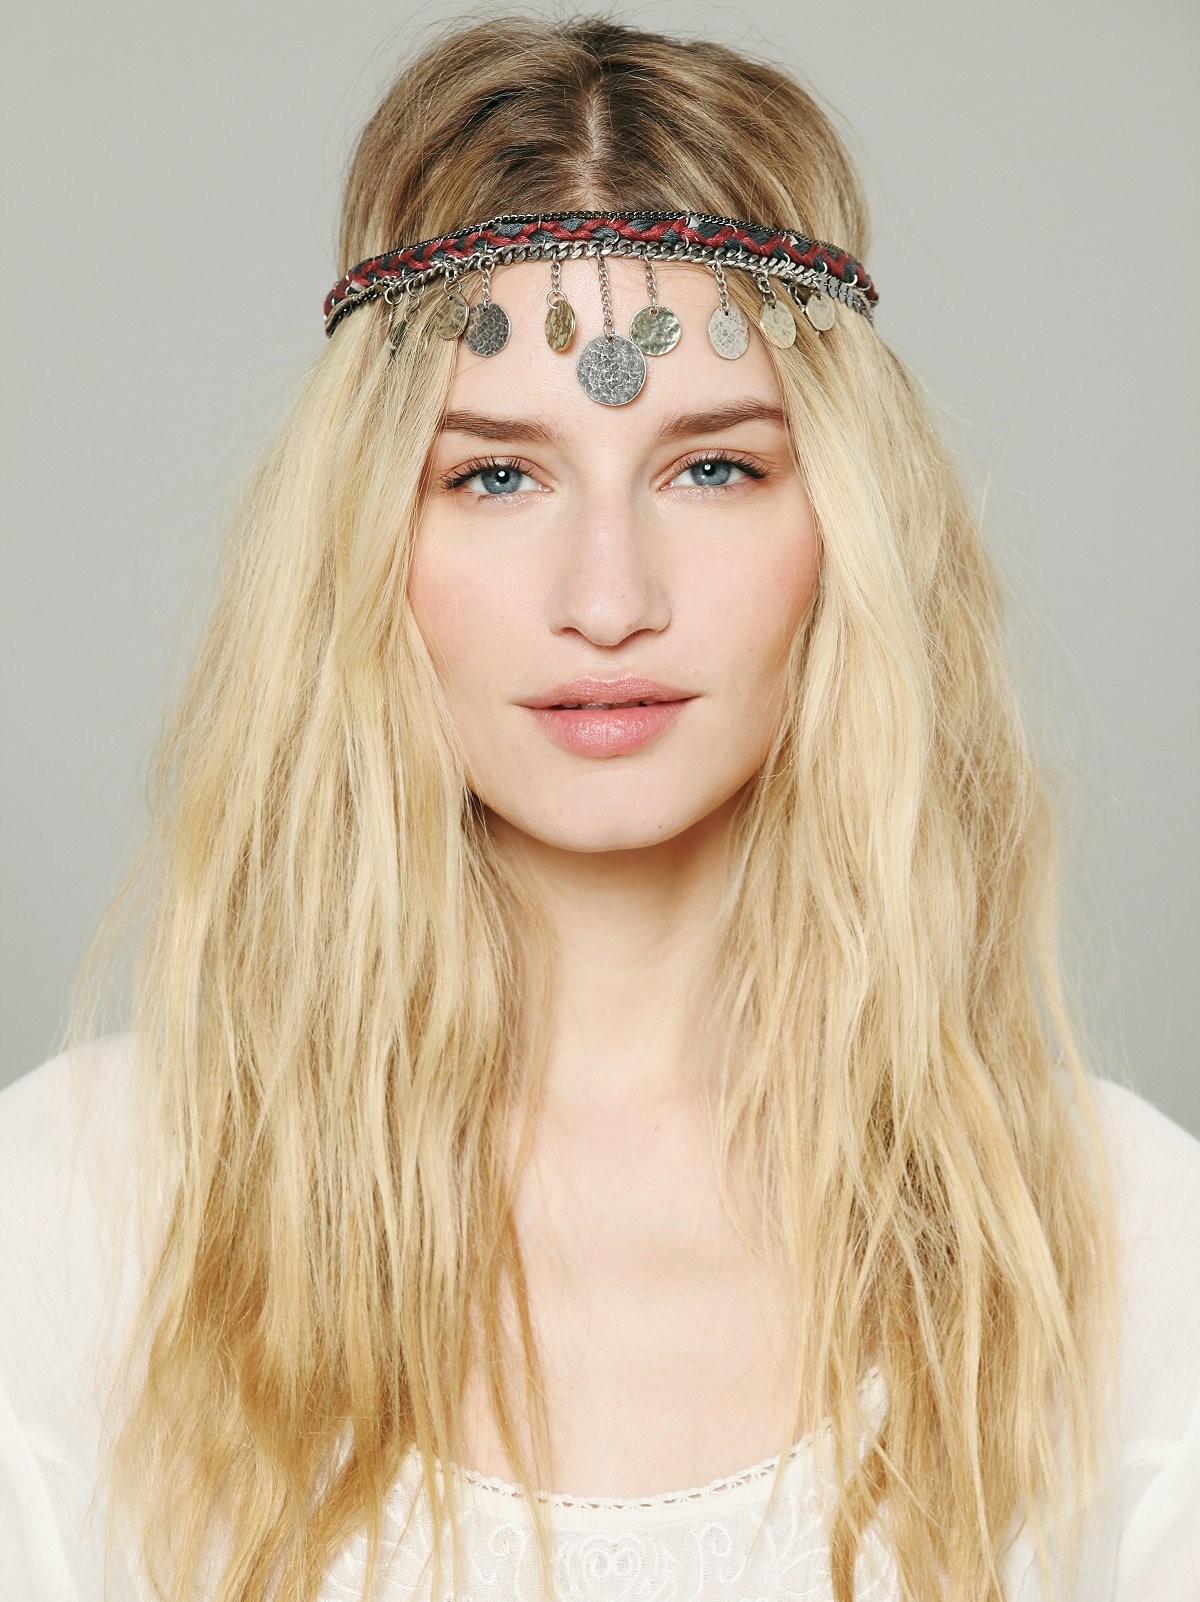 Embellished Coin Headpiece